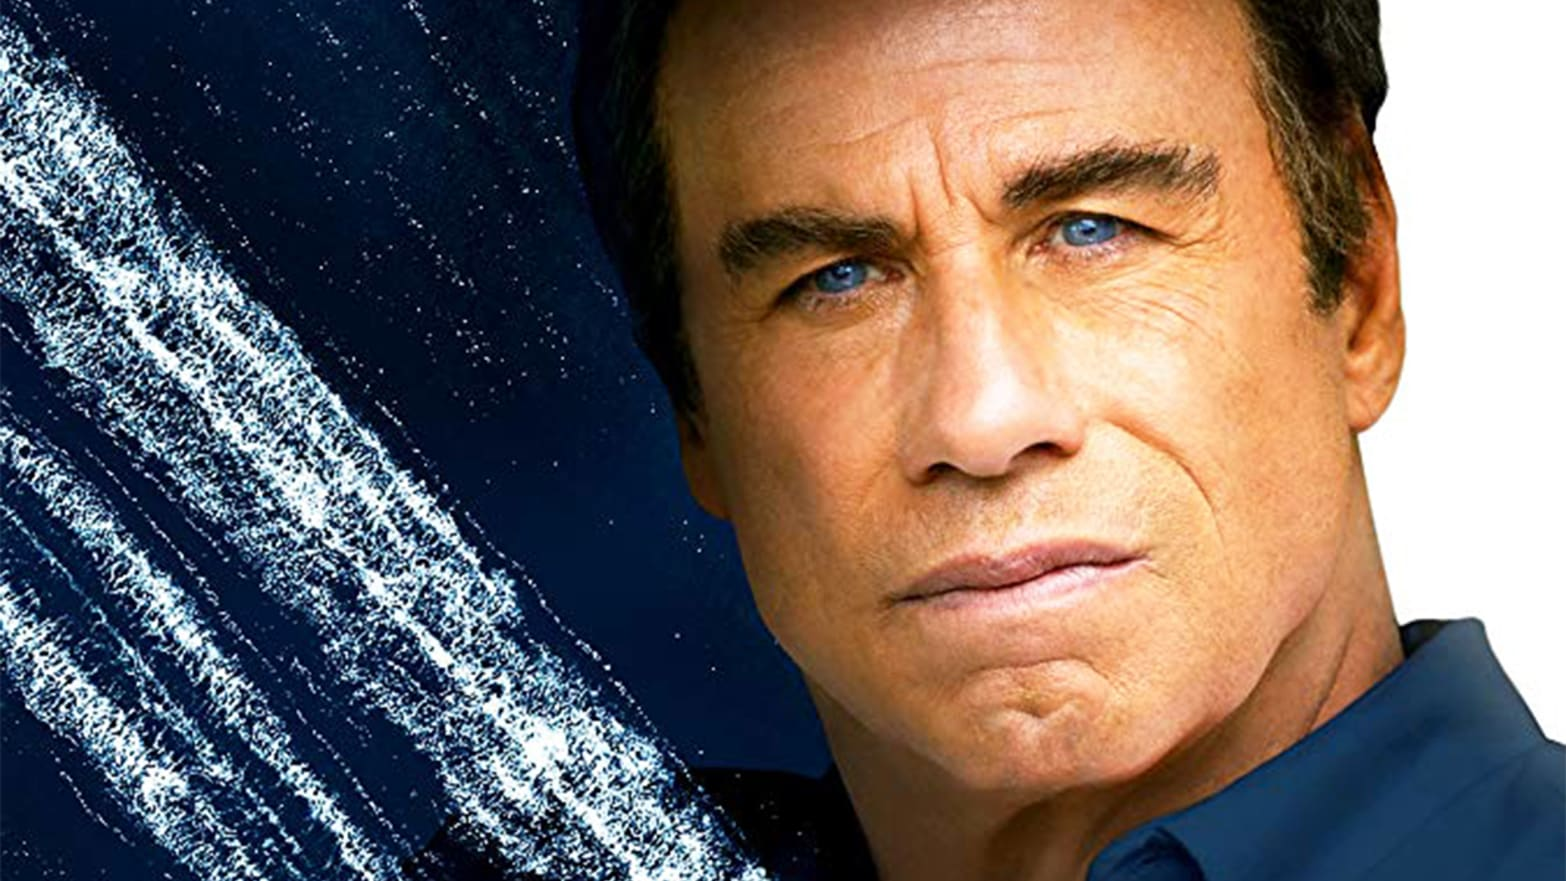 The Sorry State of John Travolta: Scientology, Movie Bombs, and Dark Allegations